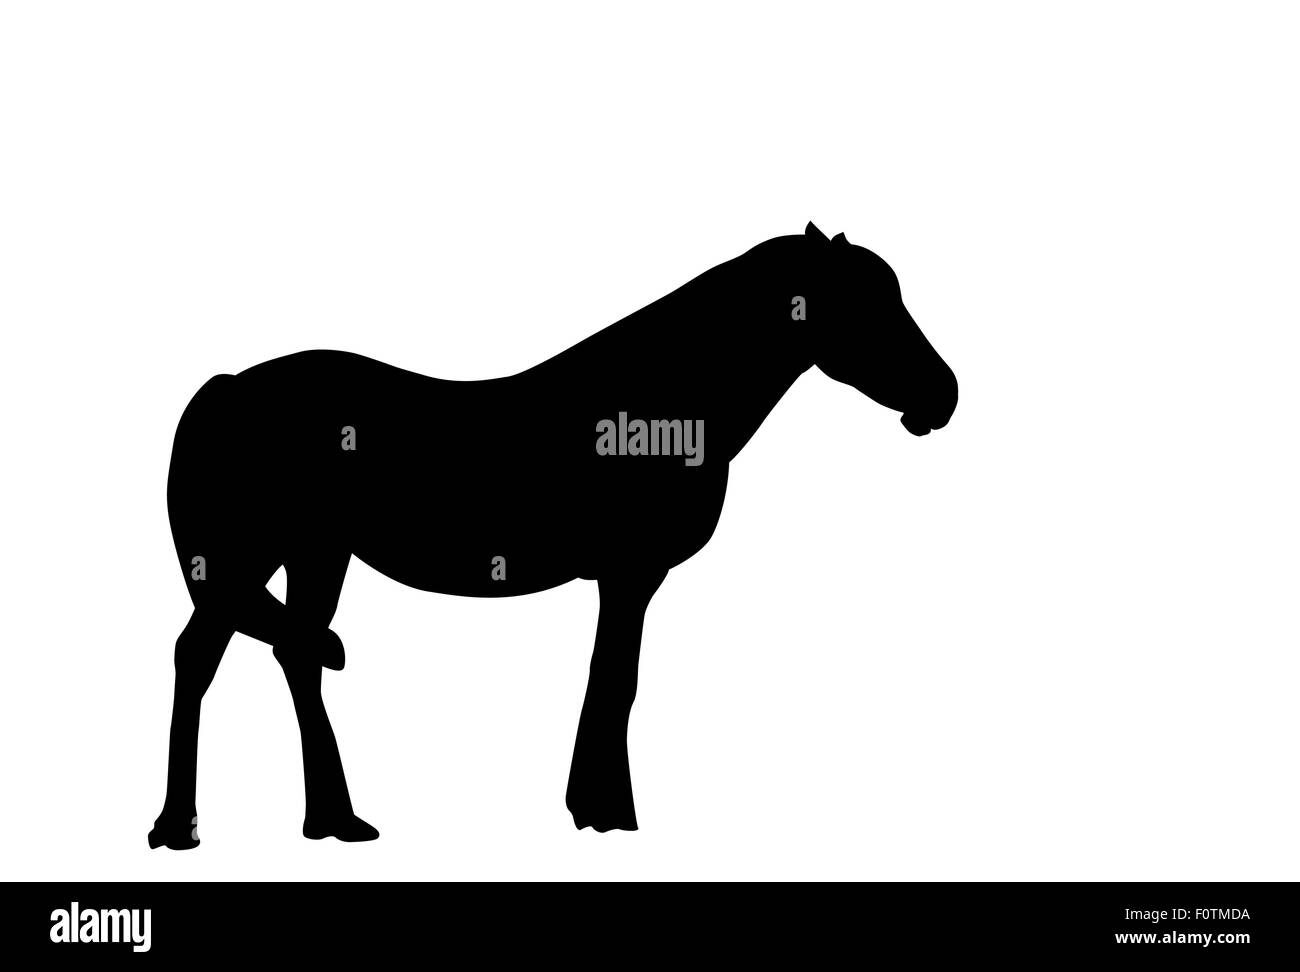 Silhouette Horse. Vector Illustration. - Stock Vector